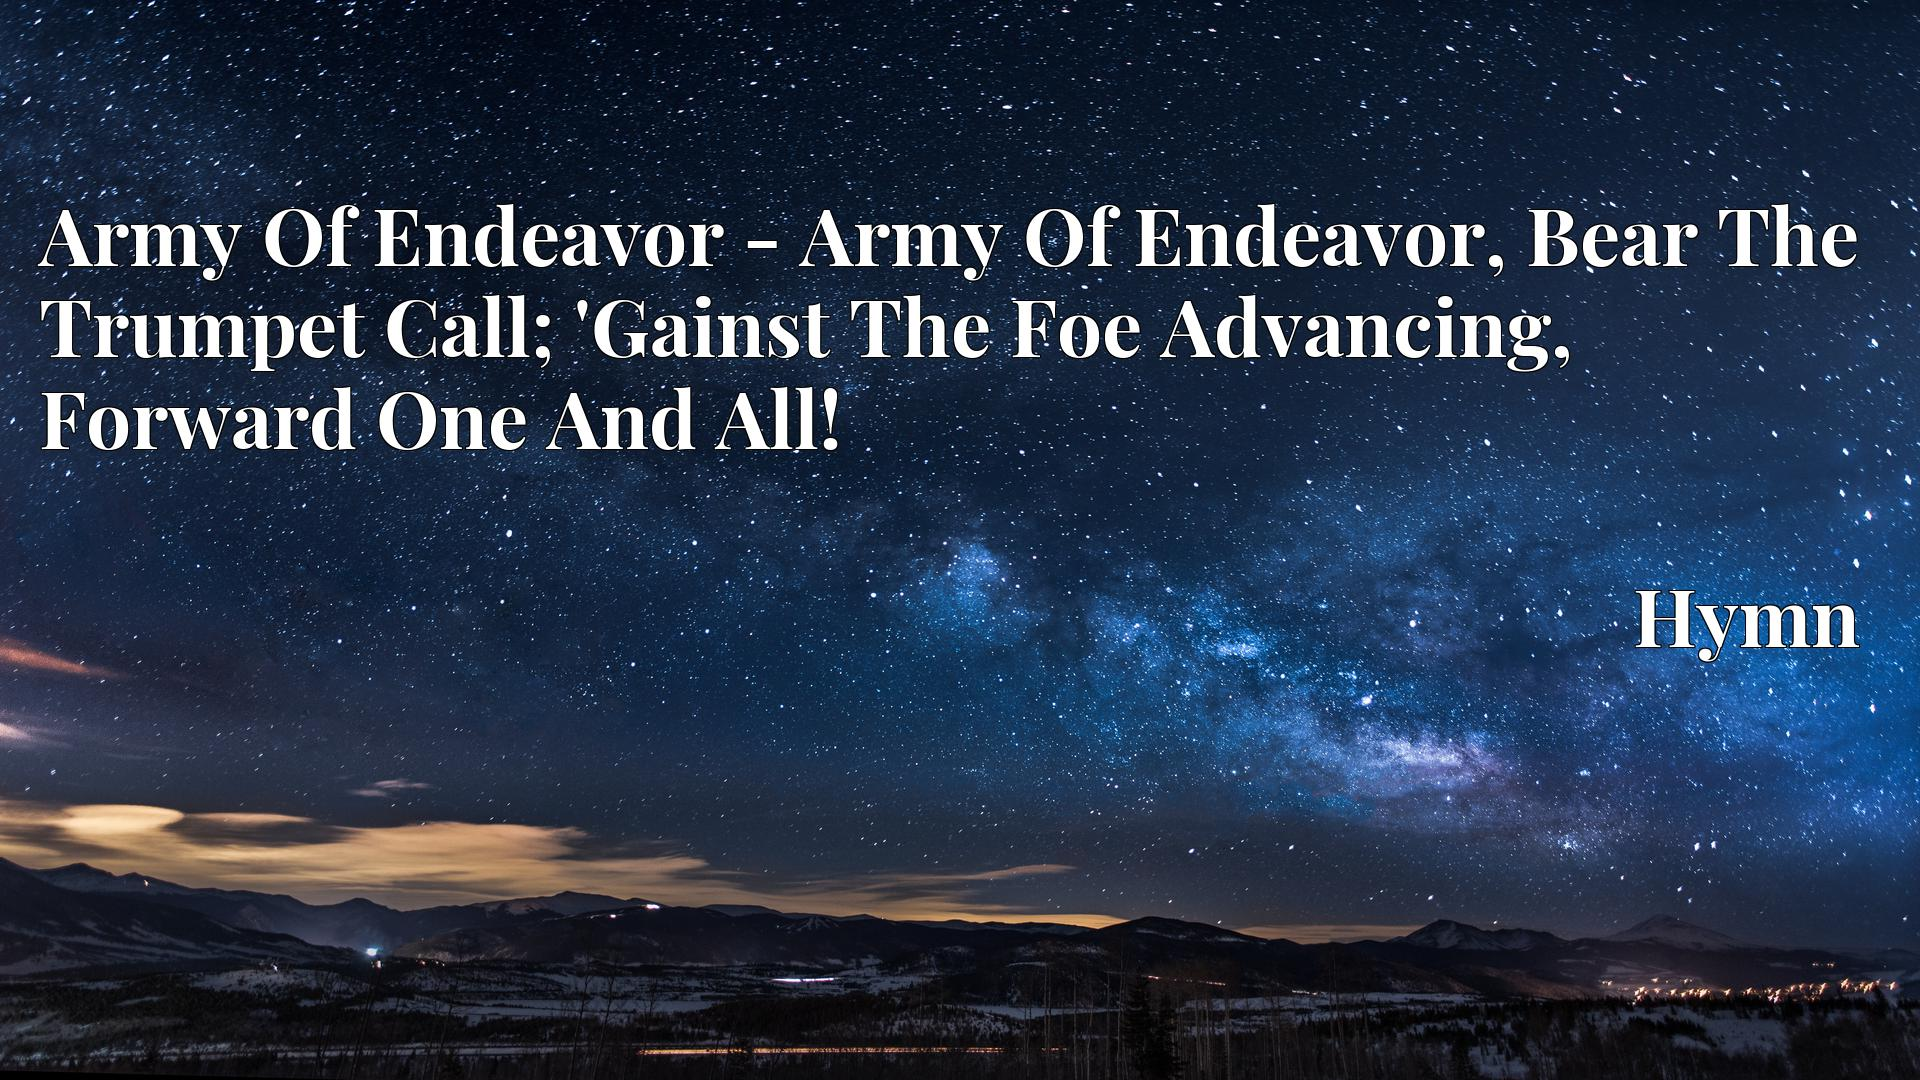 Army Of Endeavor - Army Of Endeavor, Bear The Trumpet Call; 'Gainst The Foe Advancing, Forward One And All! - Hymn